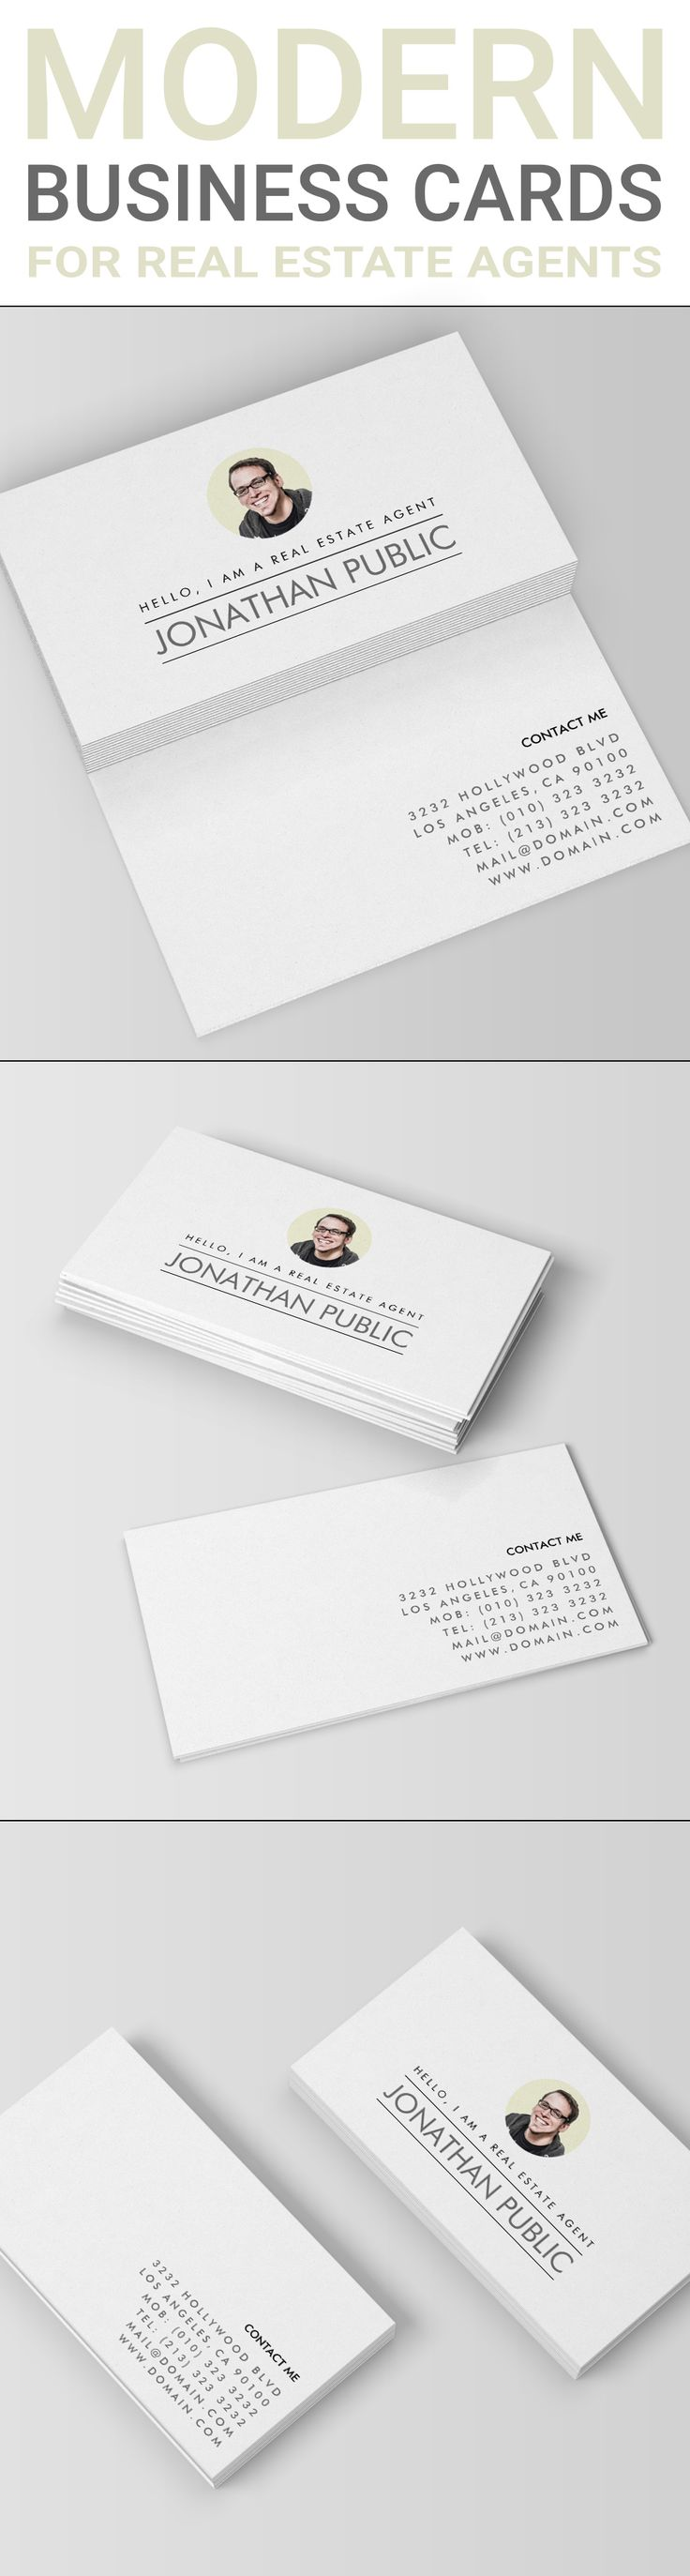 "Modern simplistic business cards design featuring your personal photograph, your name and contact details as well as in introduction line saying ""Hello, I am a"" added by your profession.  This modern business card would work great for real estate agents who would like their photo included for public recognition. The design would also work for other professions such as freelance writers, software developers or bloggers. Modern business cards by J32 Design."